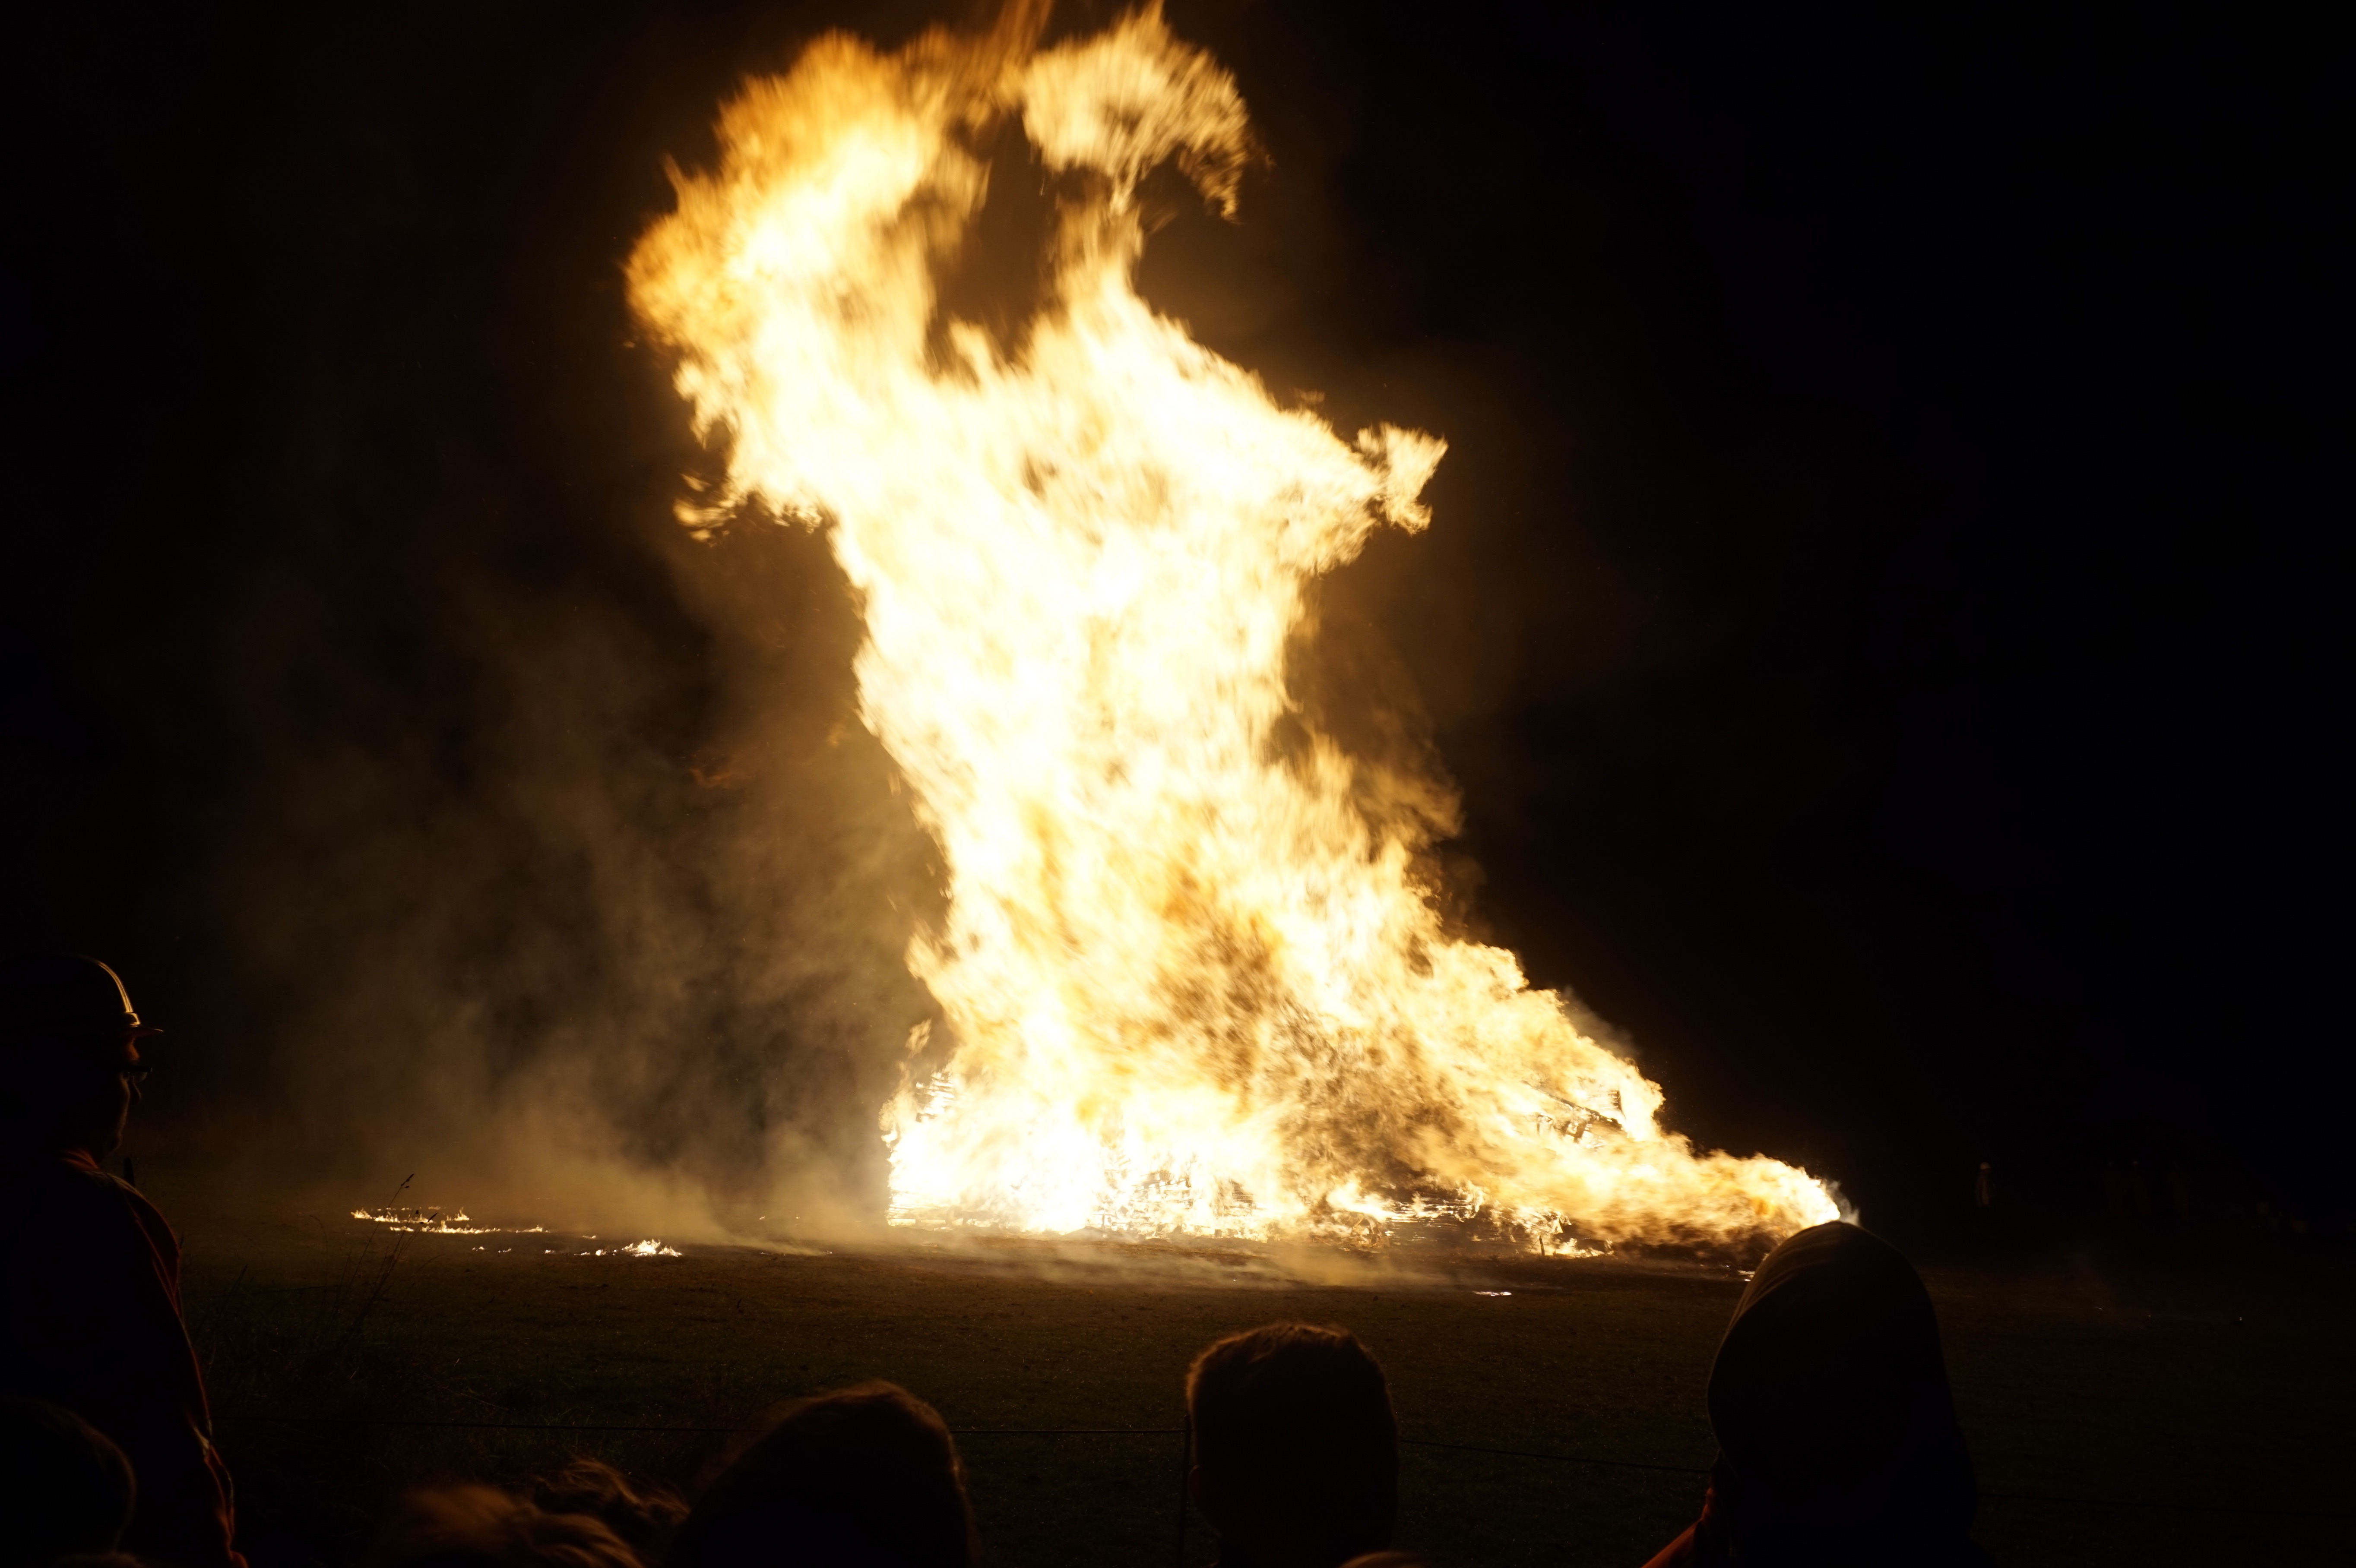 A giant bonfire rages into the sky at night.